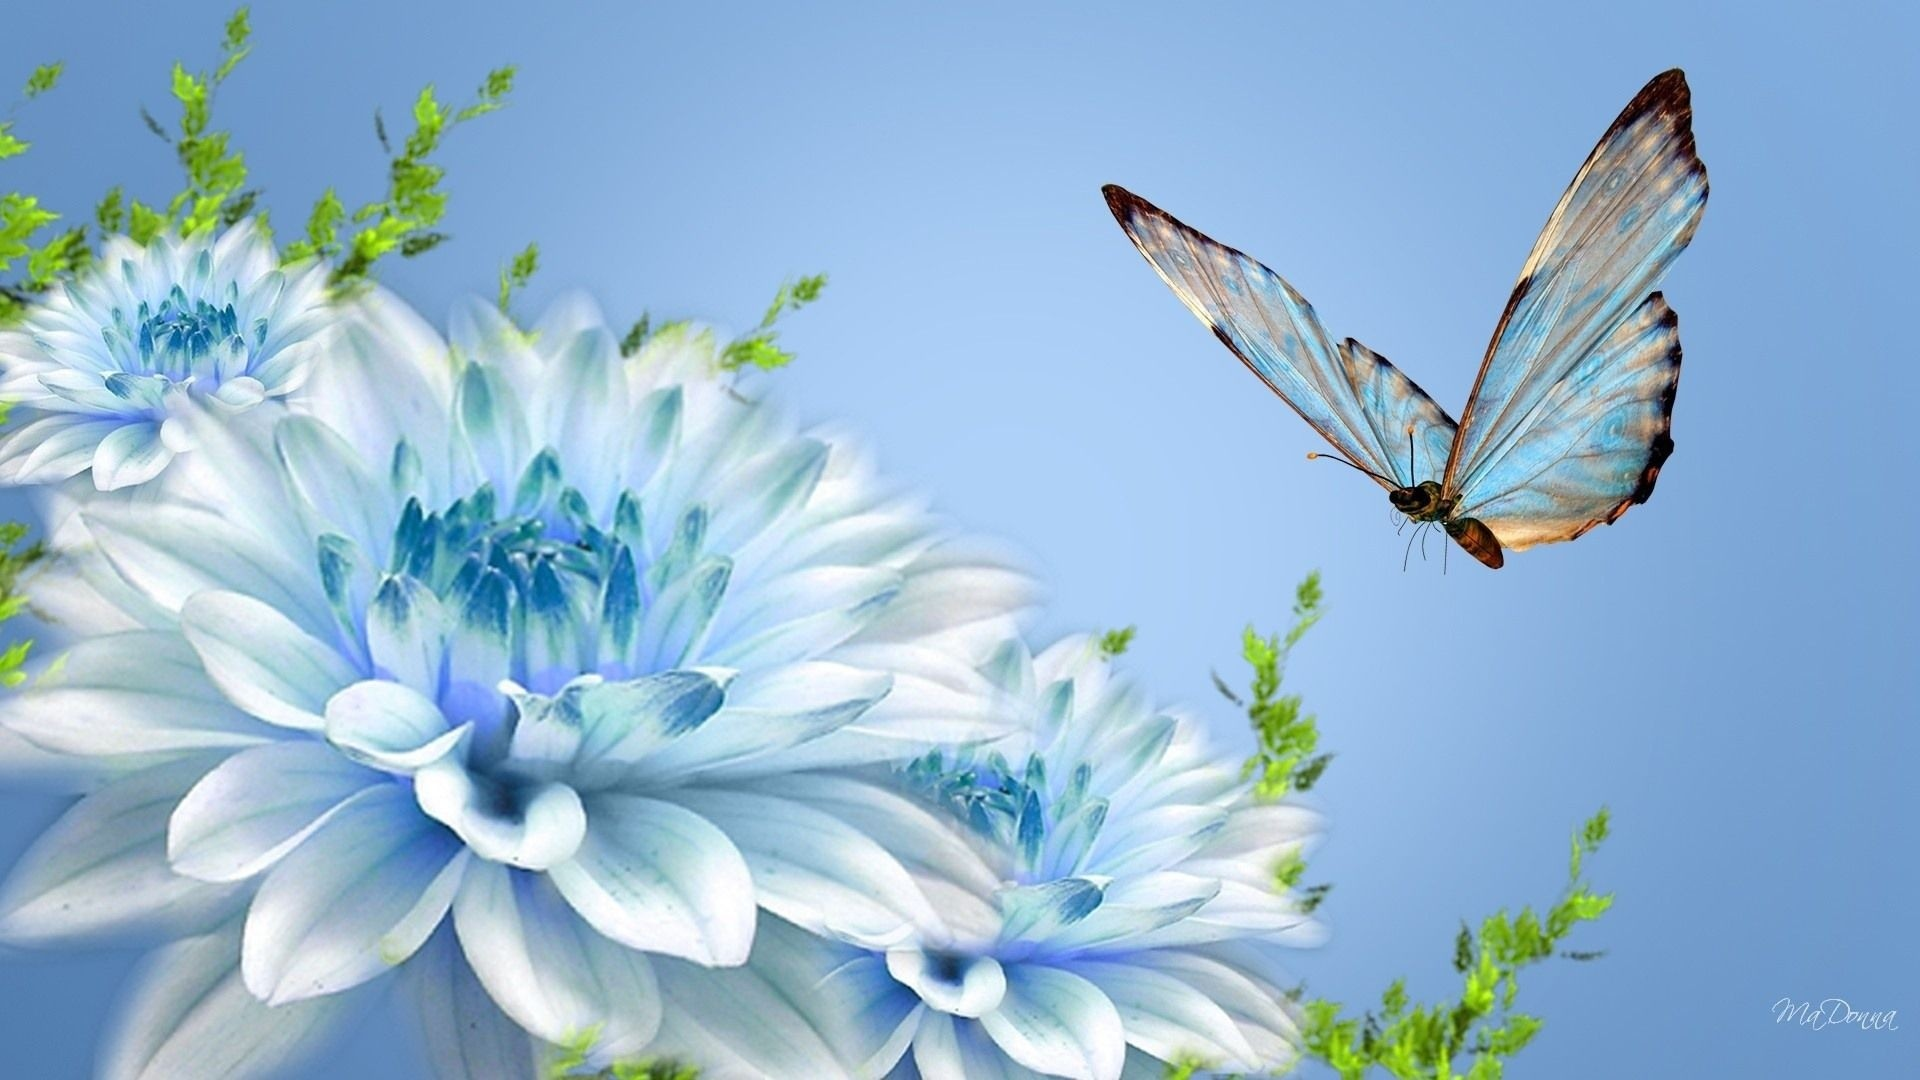 Res: 1920x1080, HD Blue Flower Wallpaper